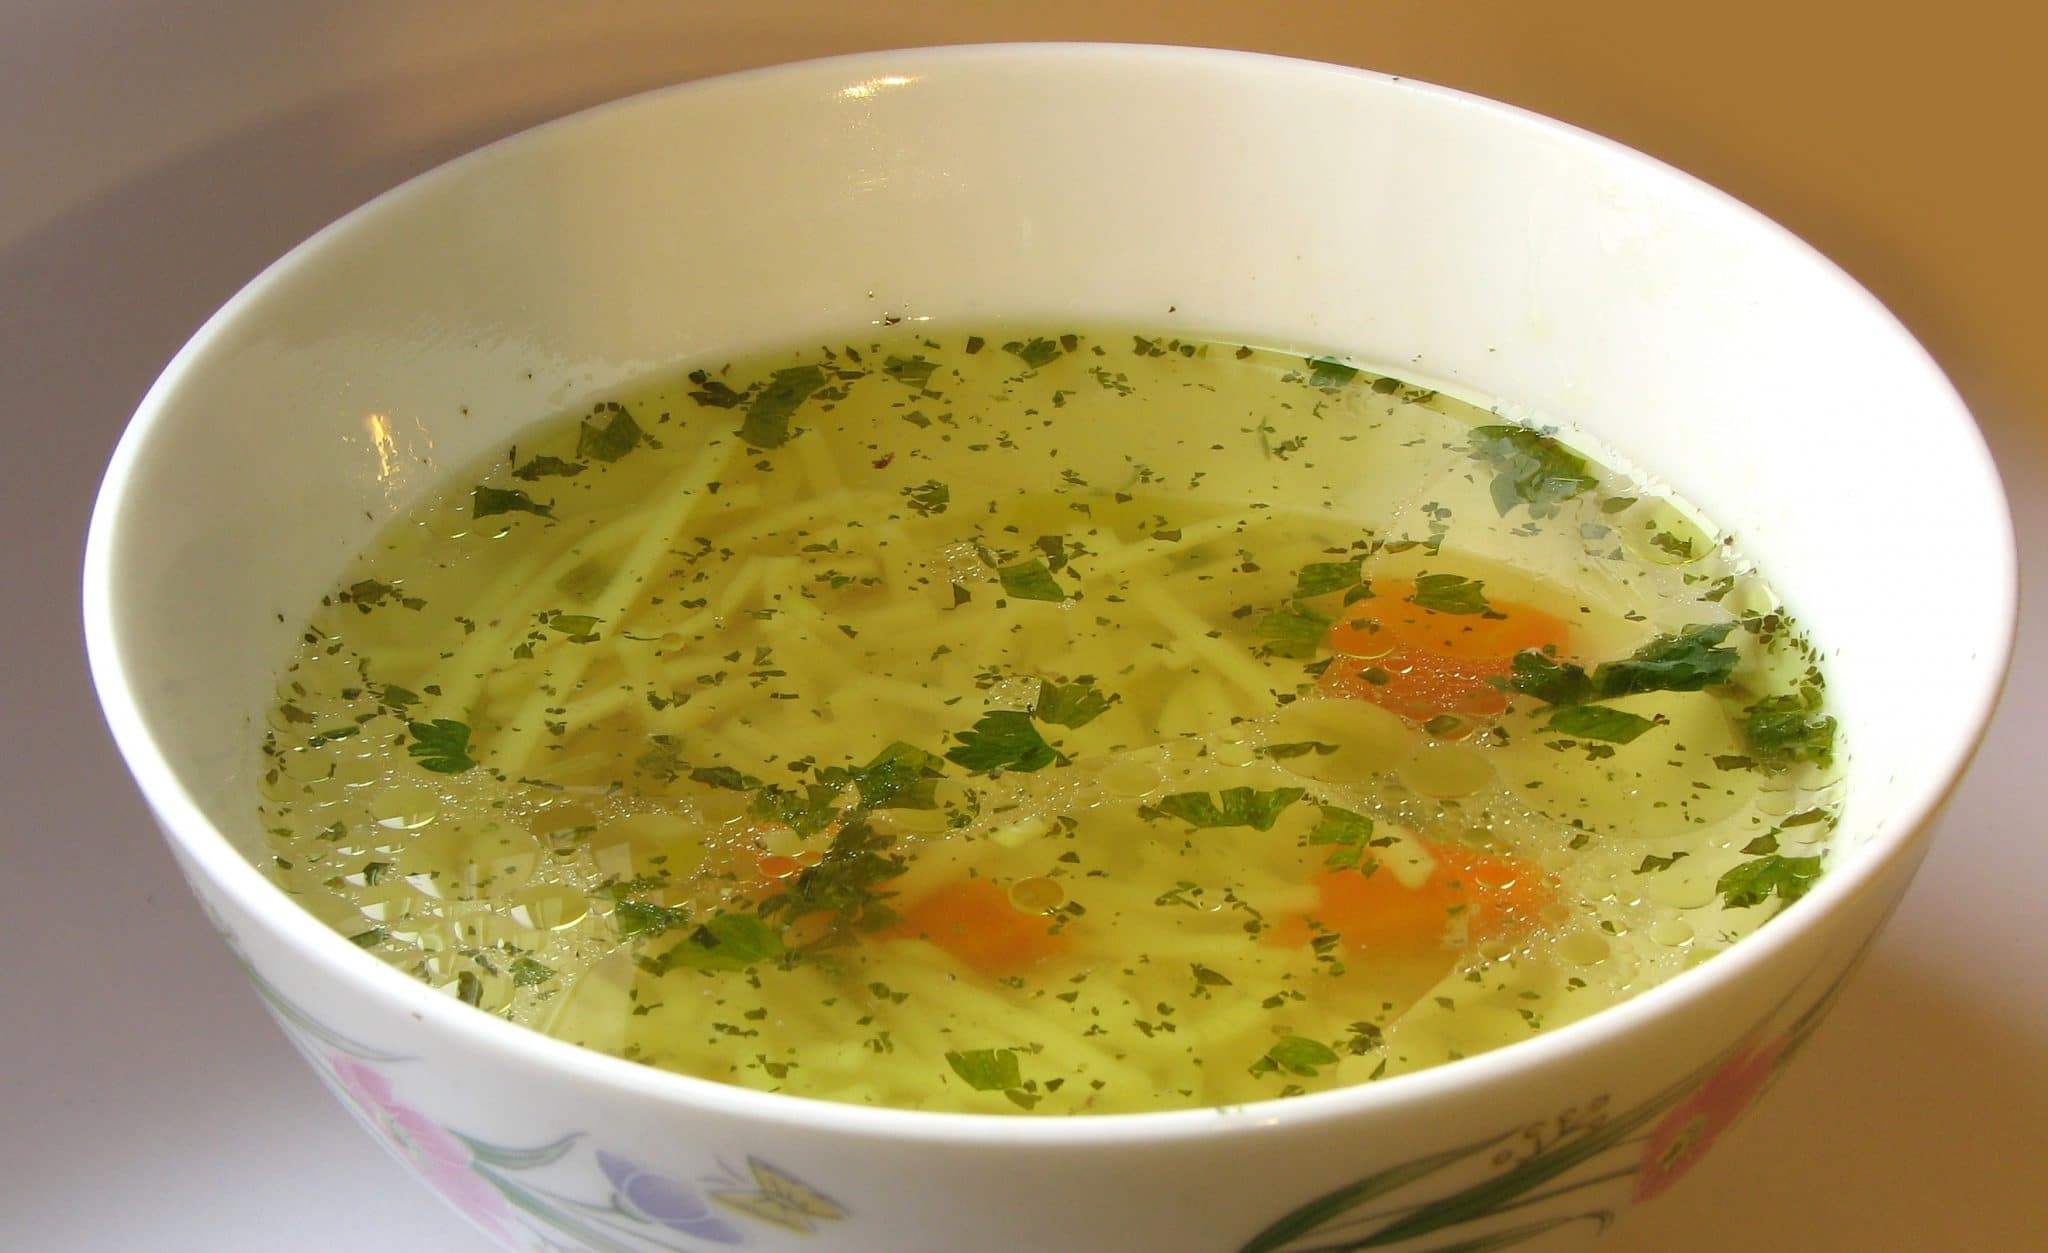 meat broth recipe, substitute chicken broth